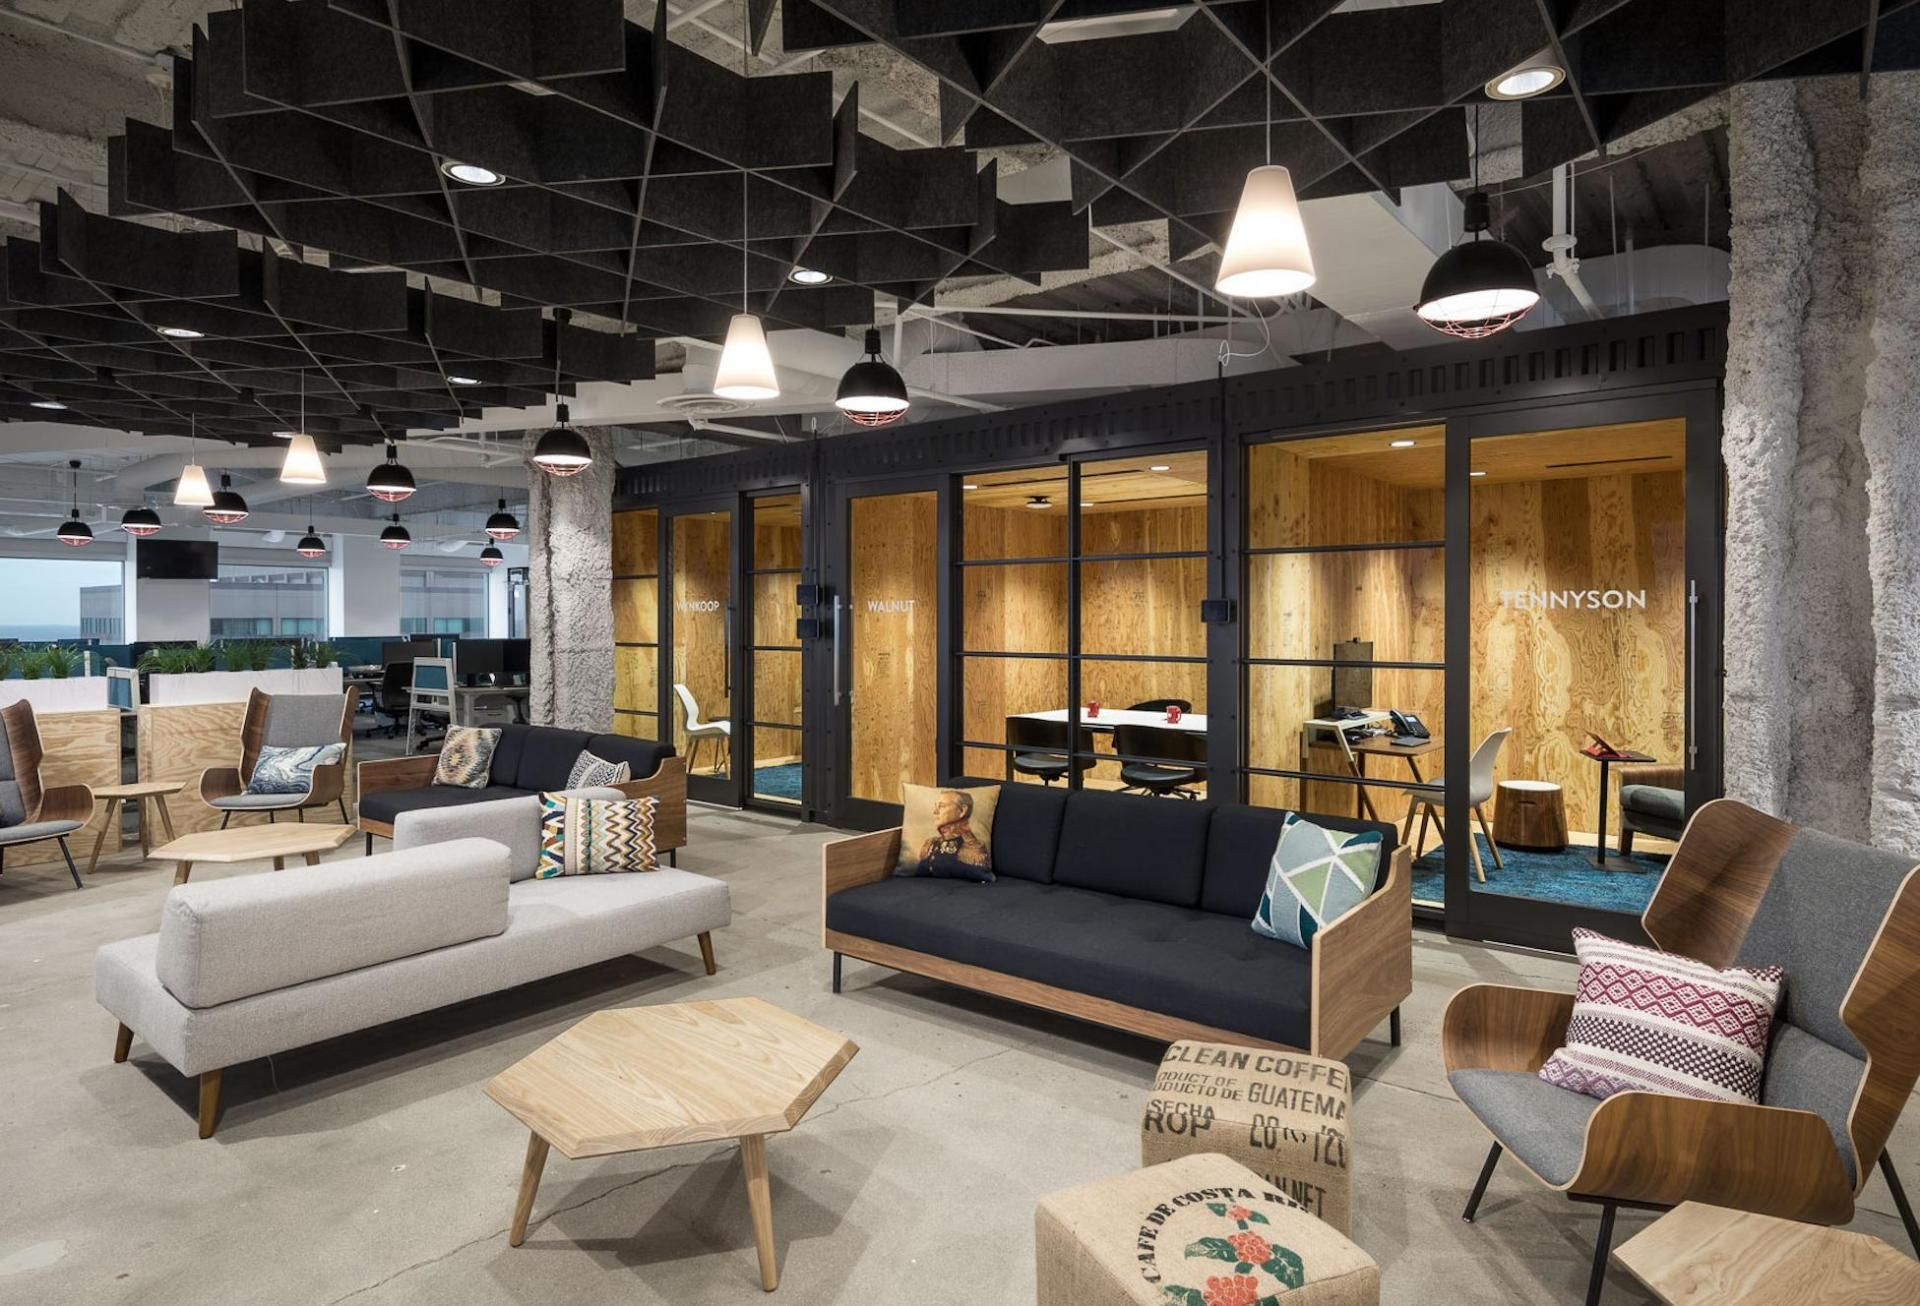 A Company's Culture Is Key To Office Design